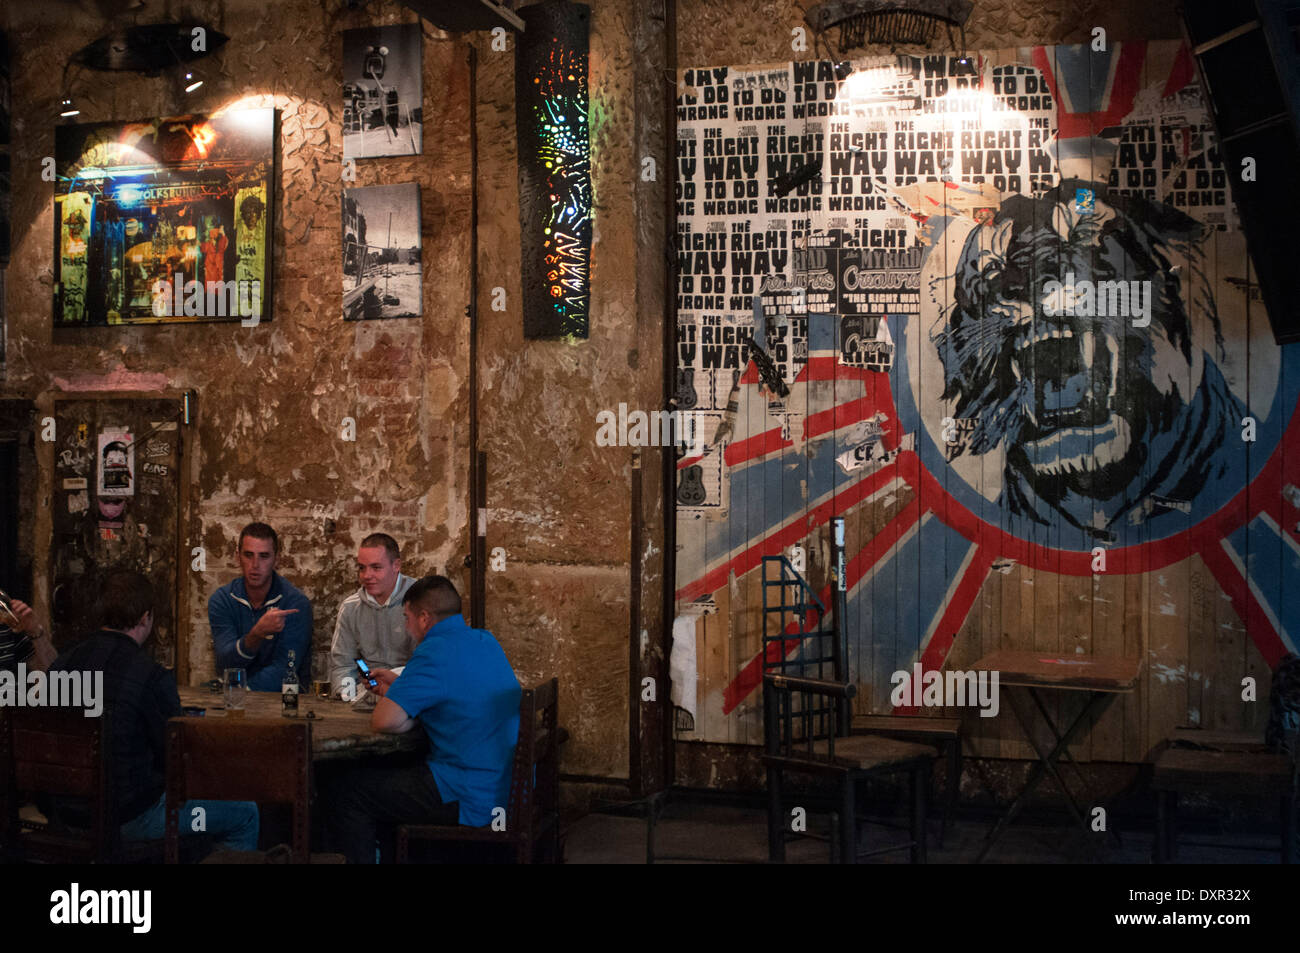 Berlin, Germany, a two-man take a beer in Zapata the Kunsthaus Tacheles. The Kunsthaus Tacheles (Art House Tacheles) was an art - Stock Image